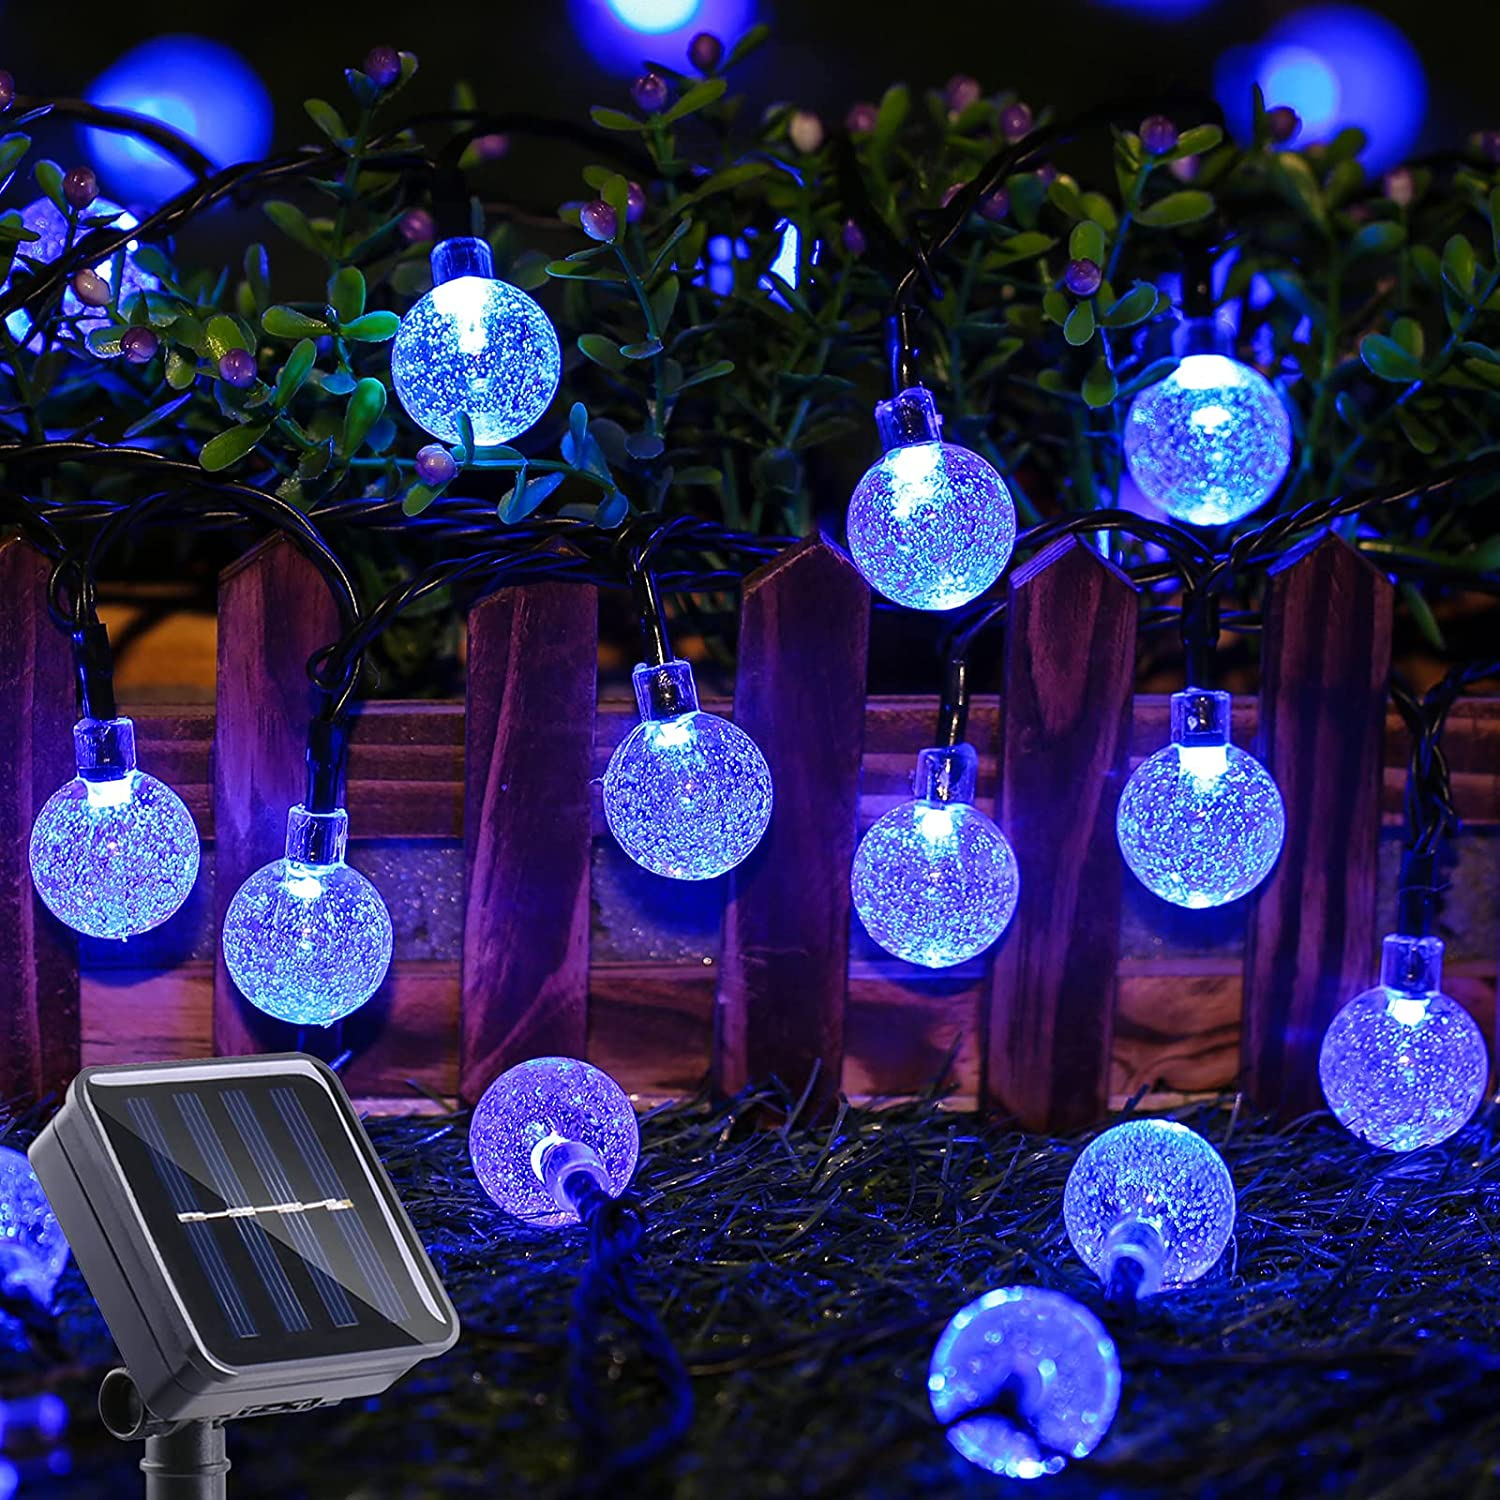 Toodour Solar String Lights 50 LED 29.5ft Solar Patio Lights with 8 Modes, Waterproof Crystal Ball String Lights for Patio, Lawn, Garden, Party, Wedding, Holiday Decor (Blue)